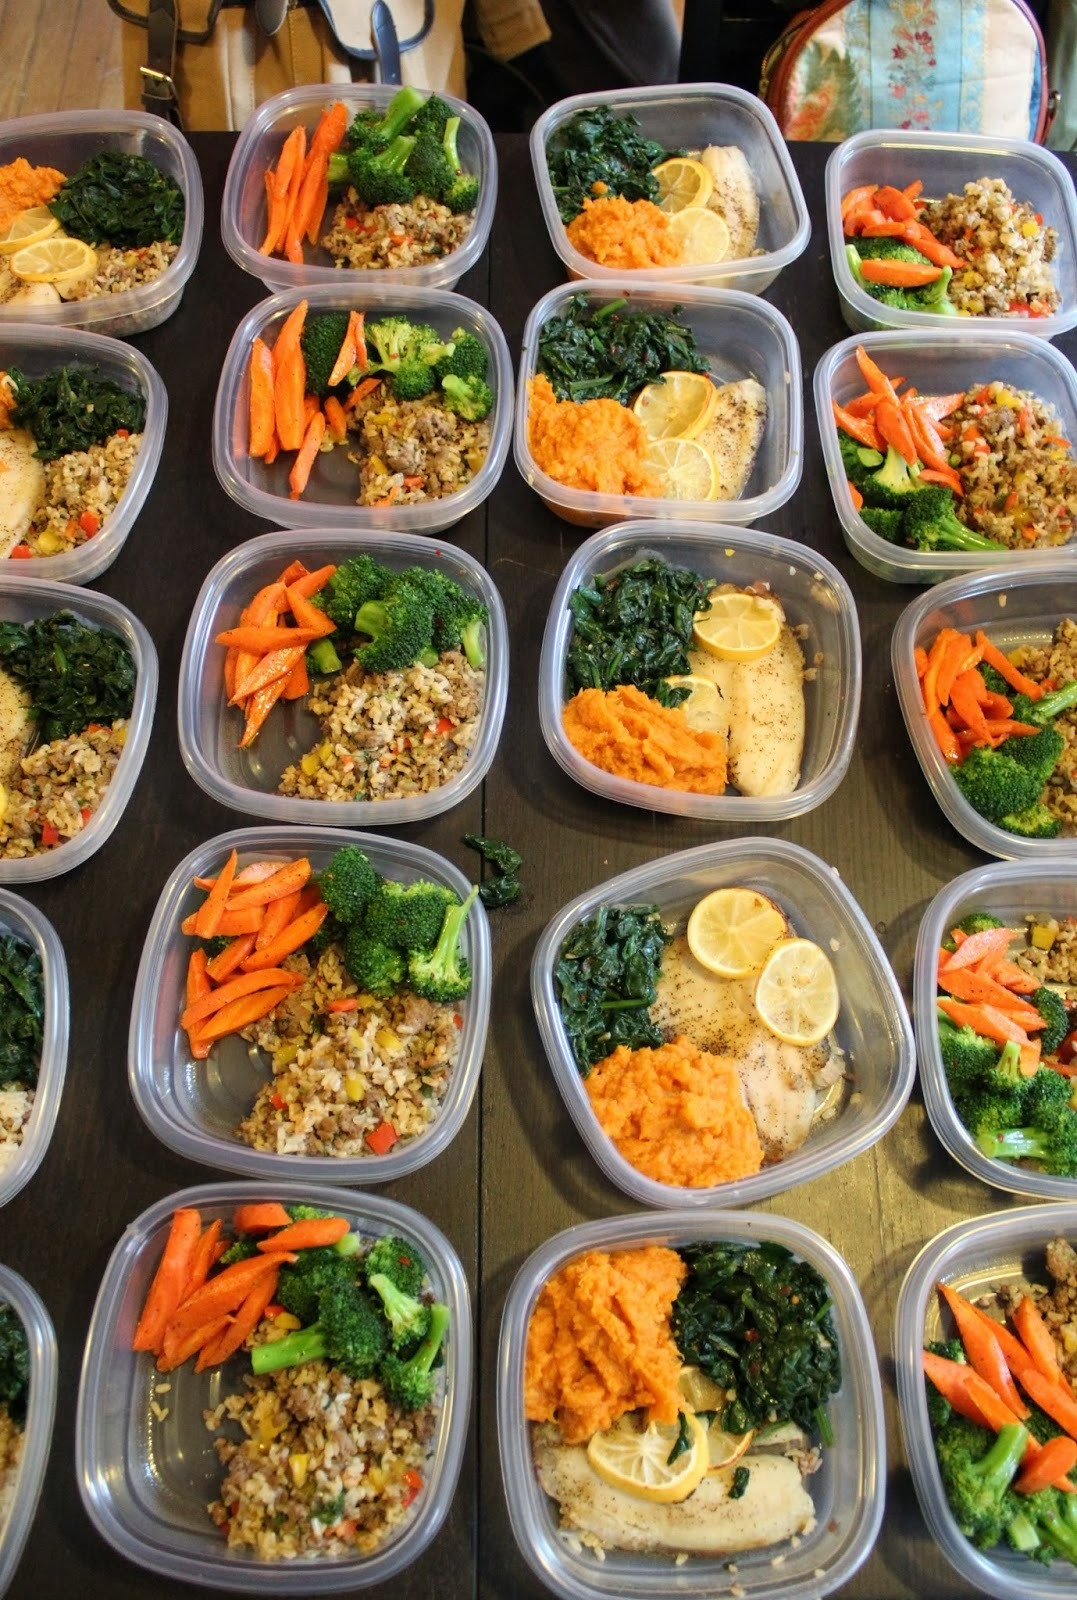 Easy Healthy Dinner Ideas  Healthy Meal Prep Ideas For The WeekWritings and Papers